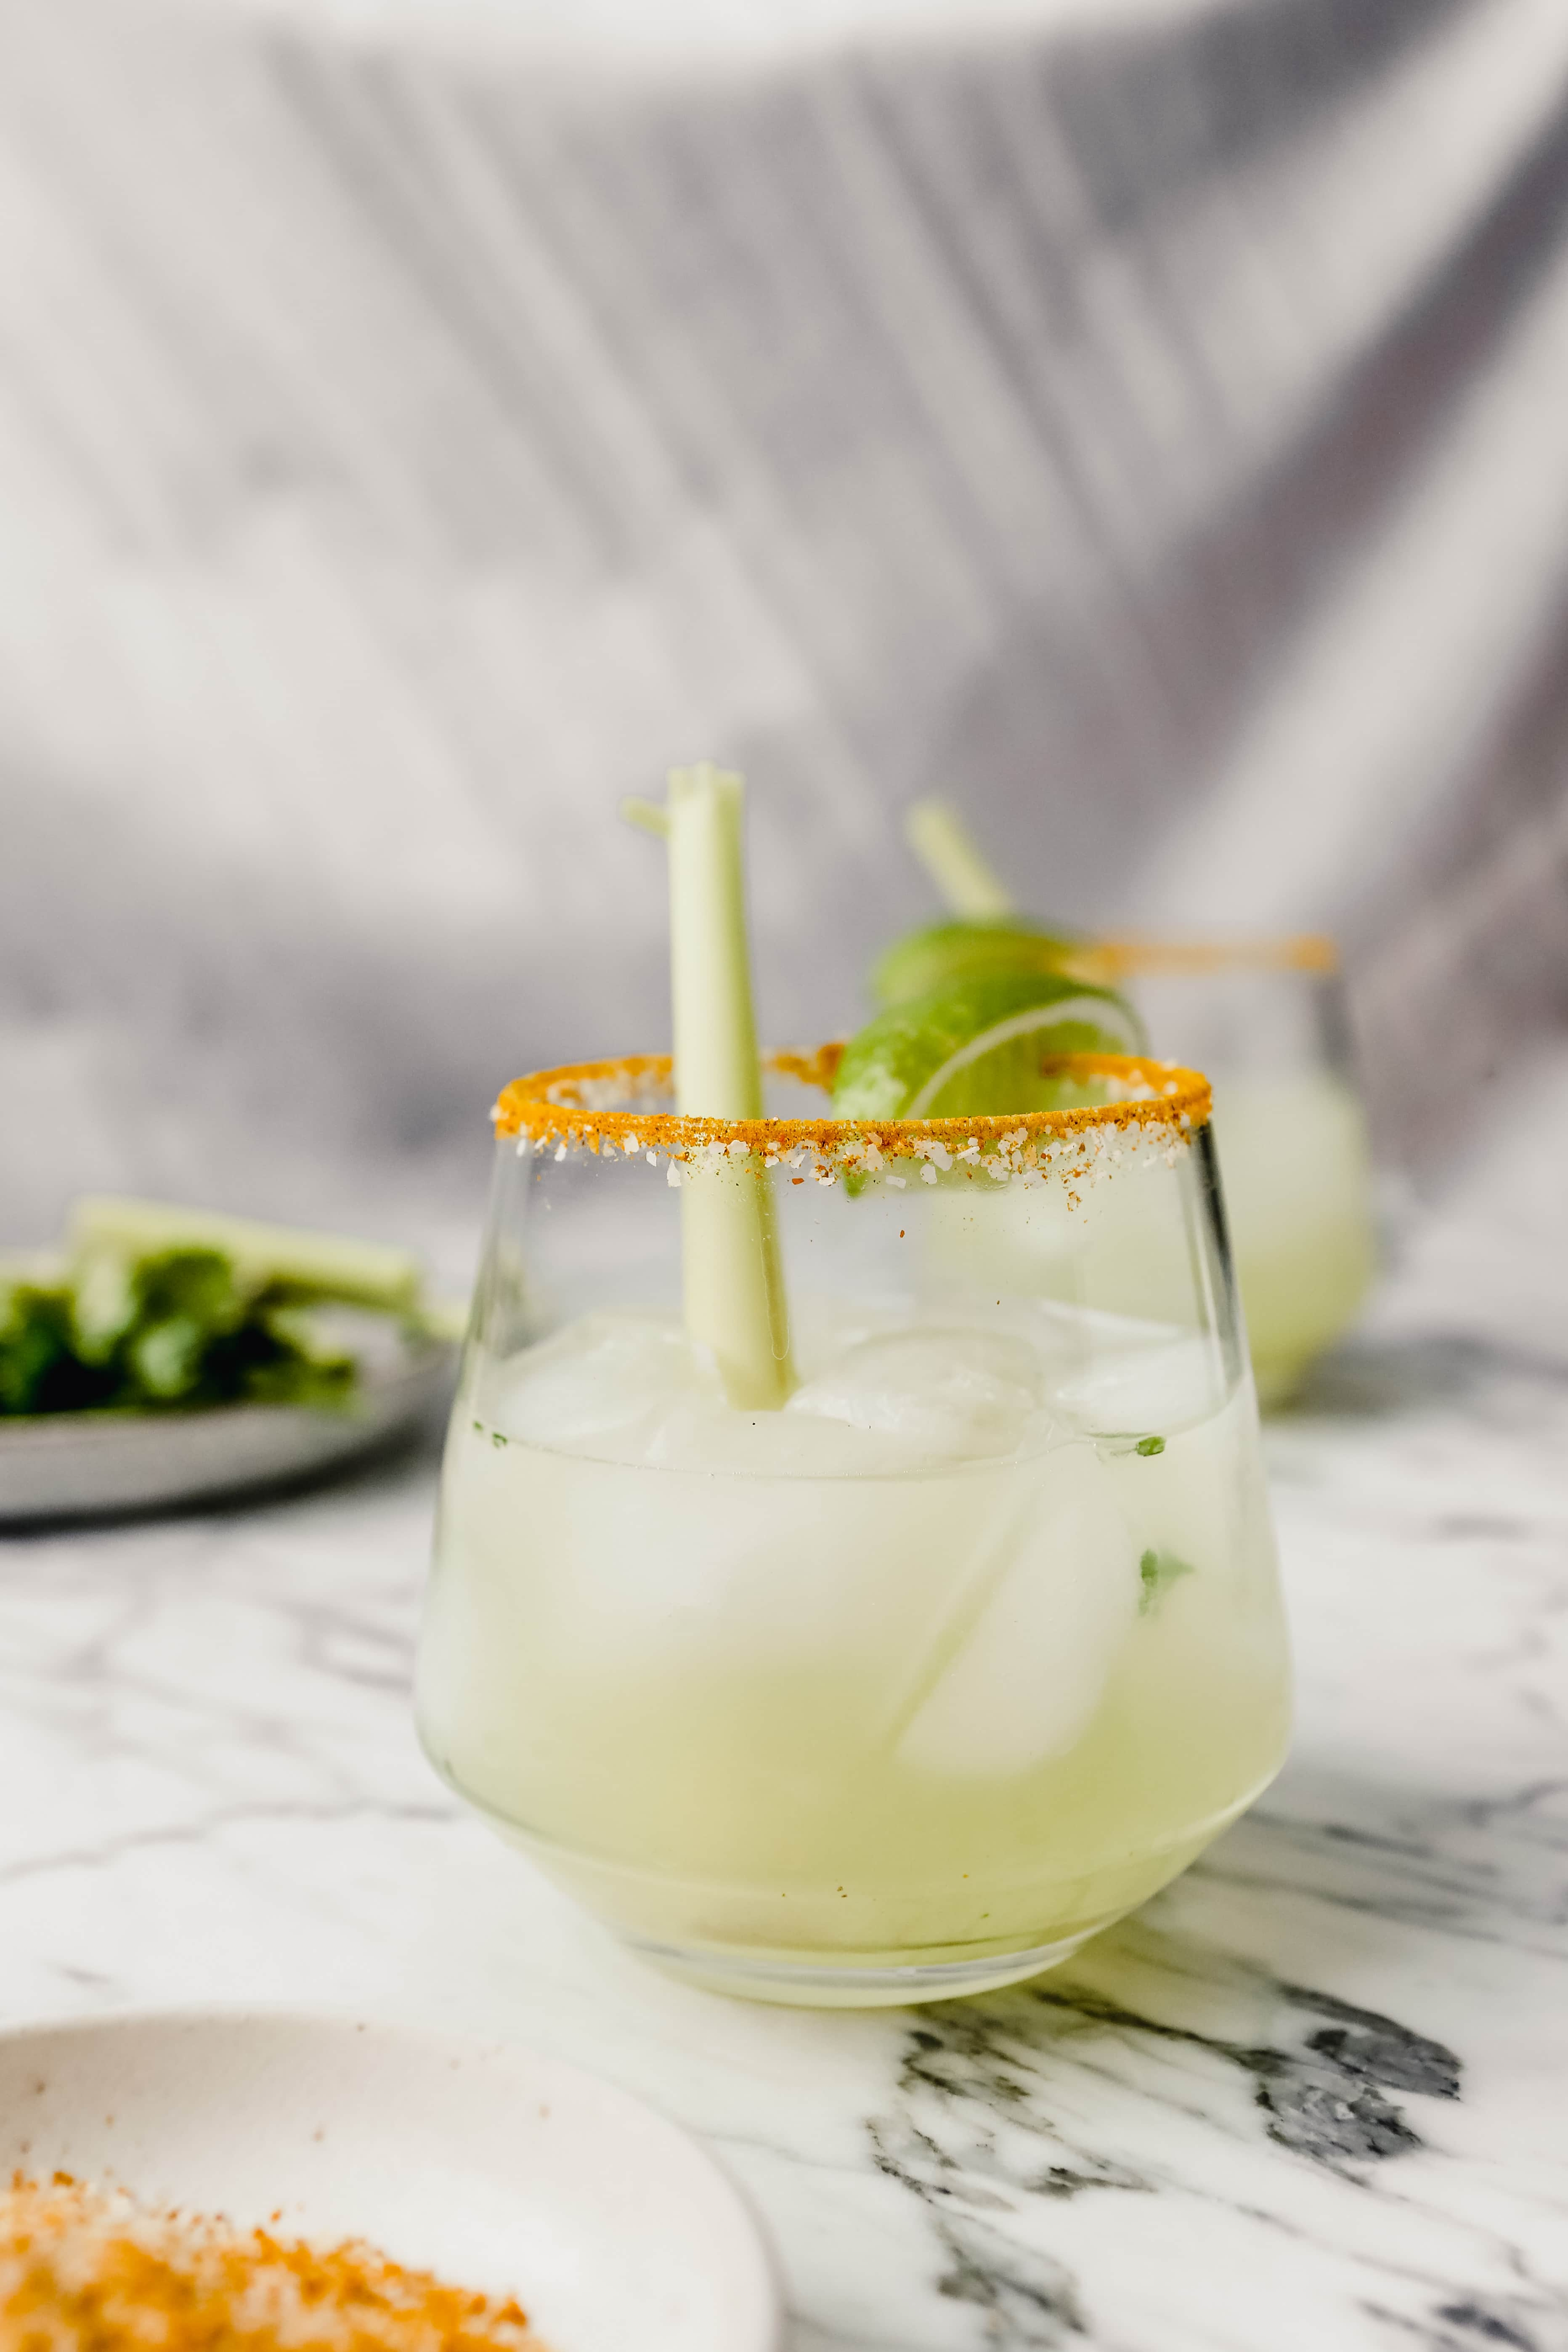 Photograph of a margarita set on a white marble table garnished with a lime wedge and lemongrass.